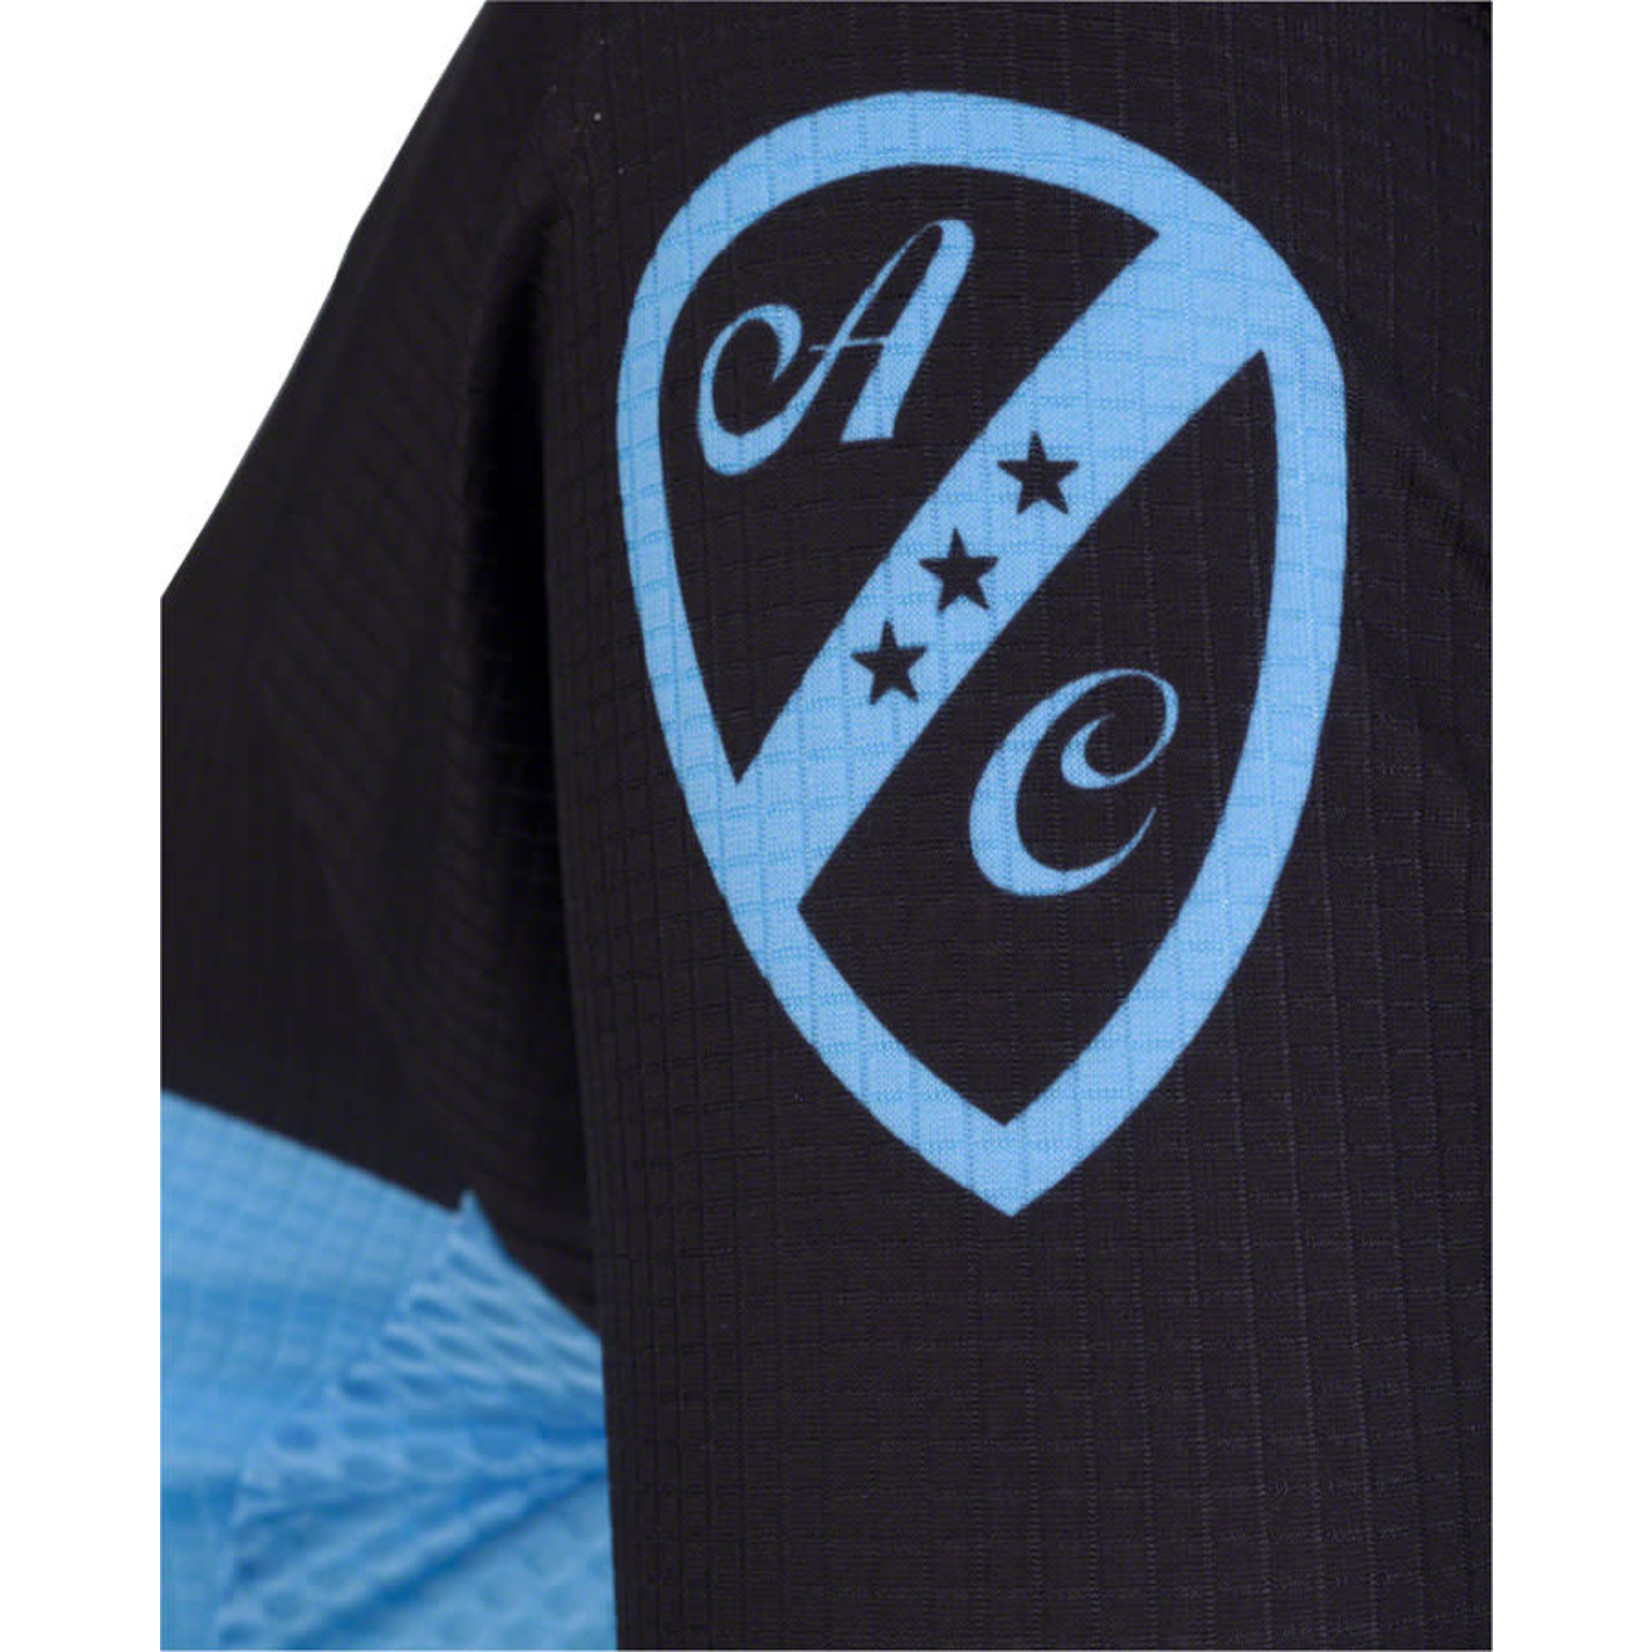 All-City All-City Classic Jersey - Blue/Black, Short Sleeve, Women's, X-Small